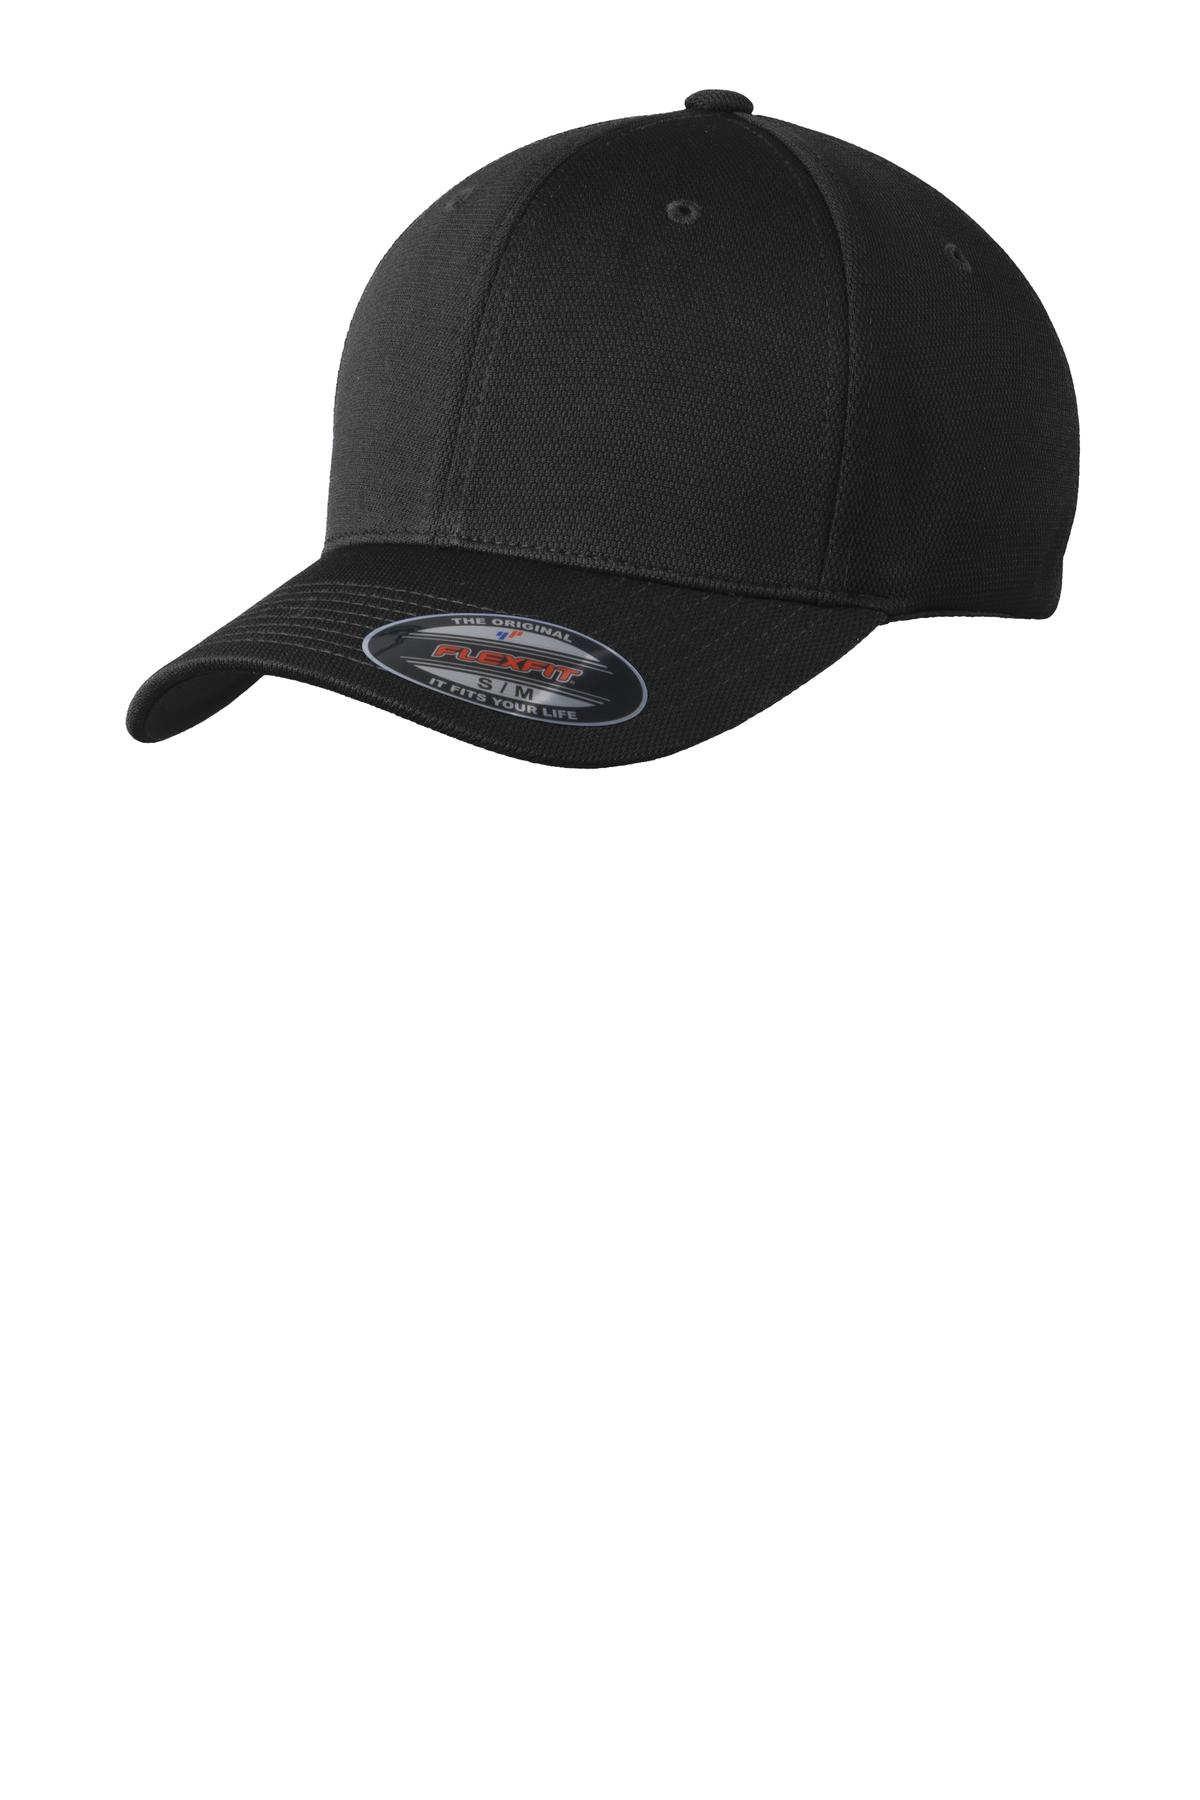 Sport-Tek ®  Flexfit ®  Cool & Dry Poly Block Mesh Cap. STC22 - Black